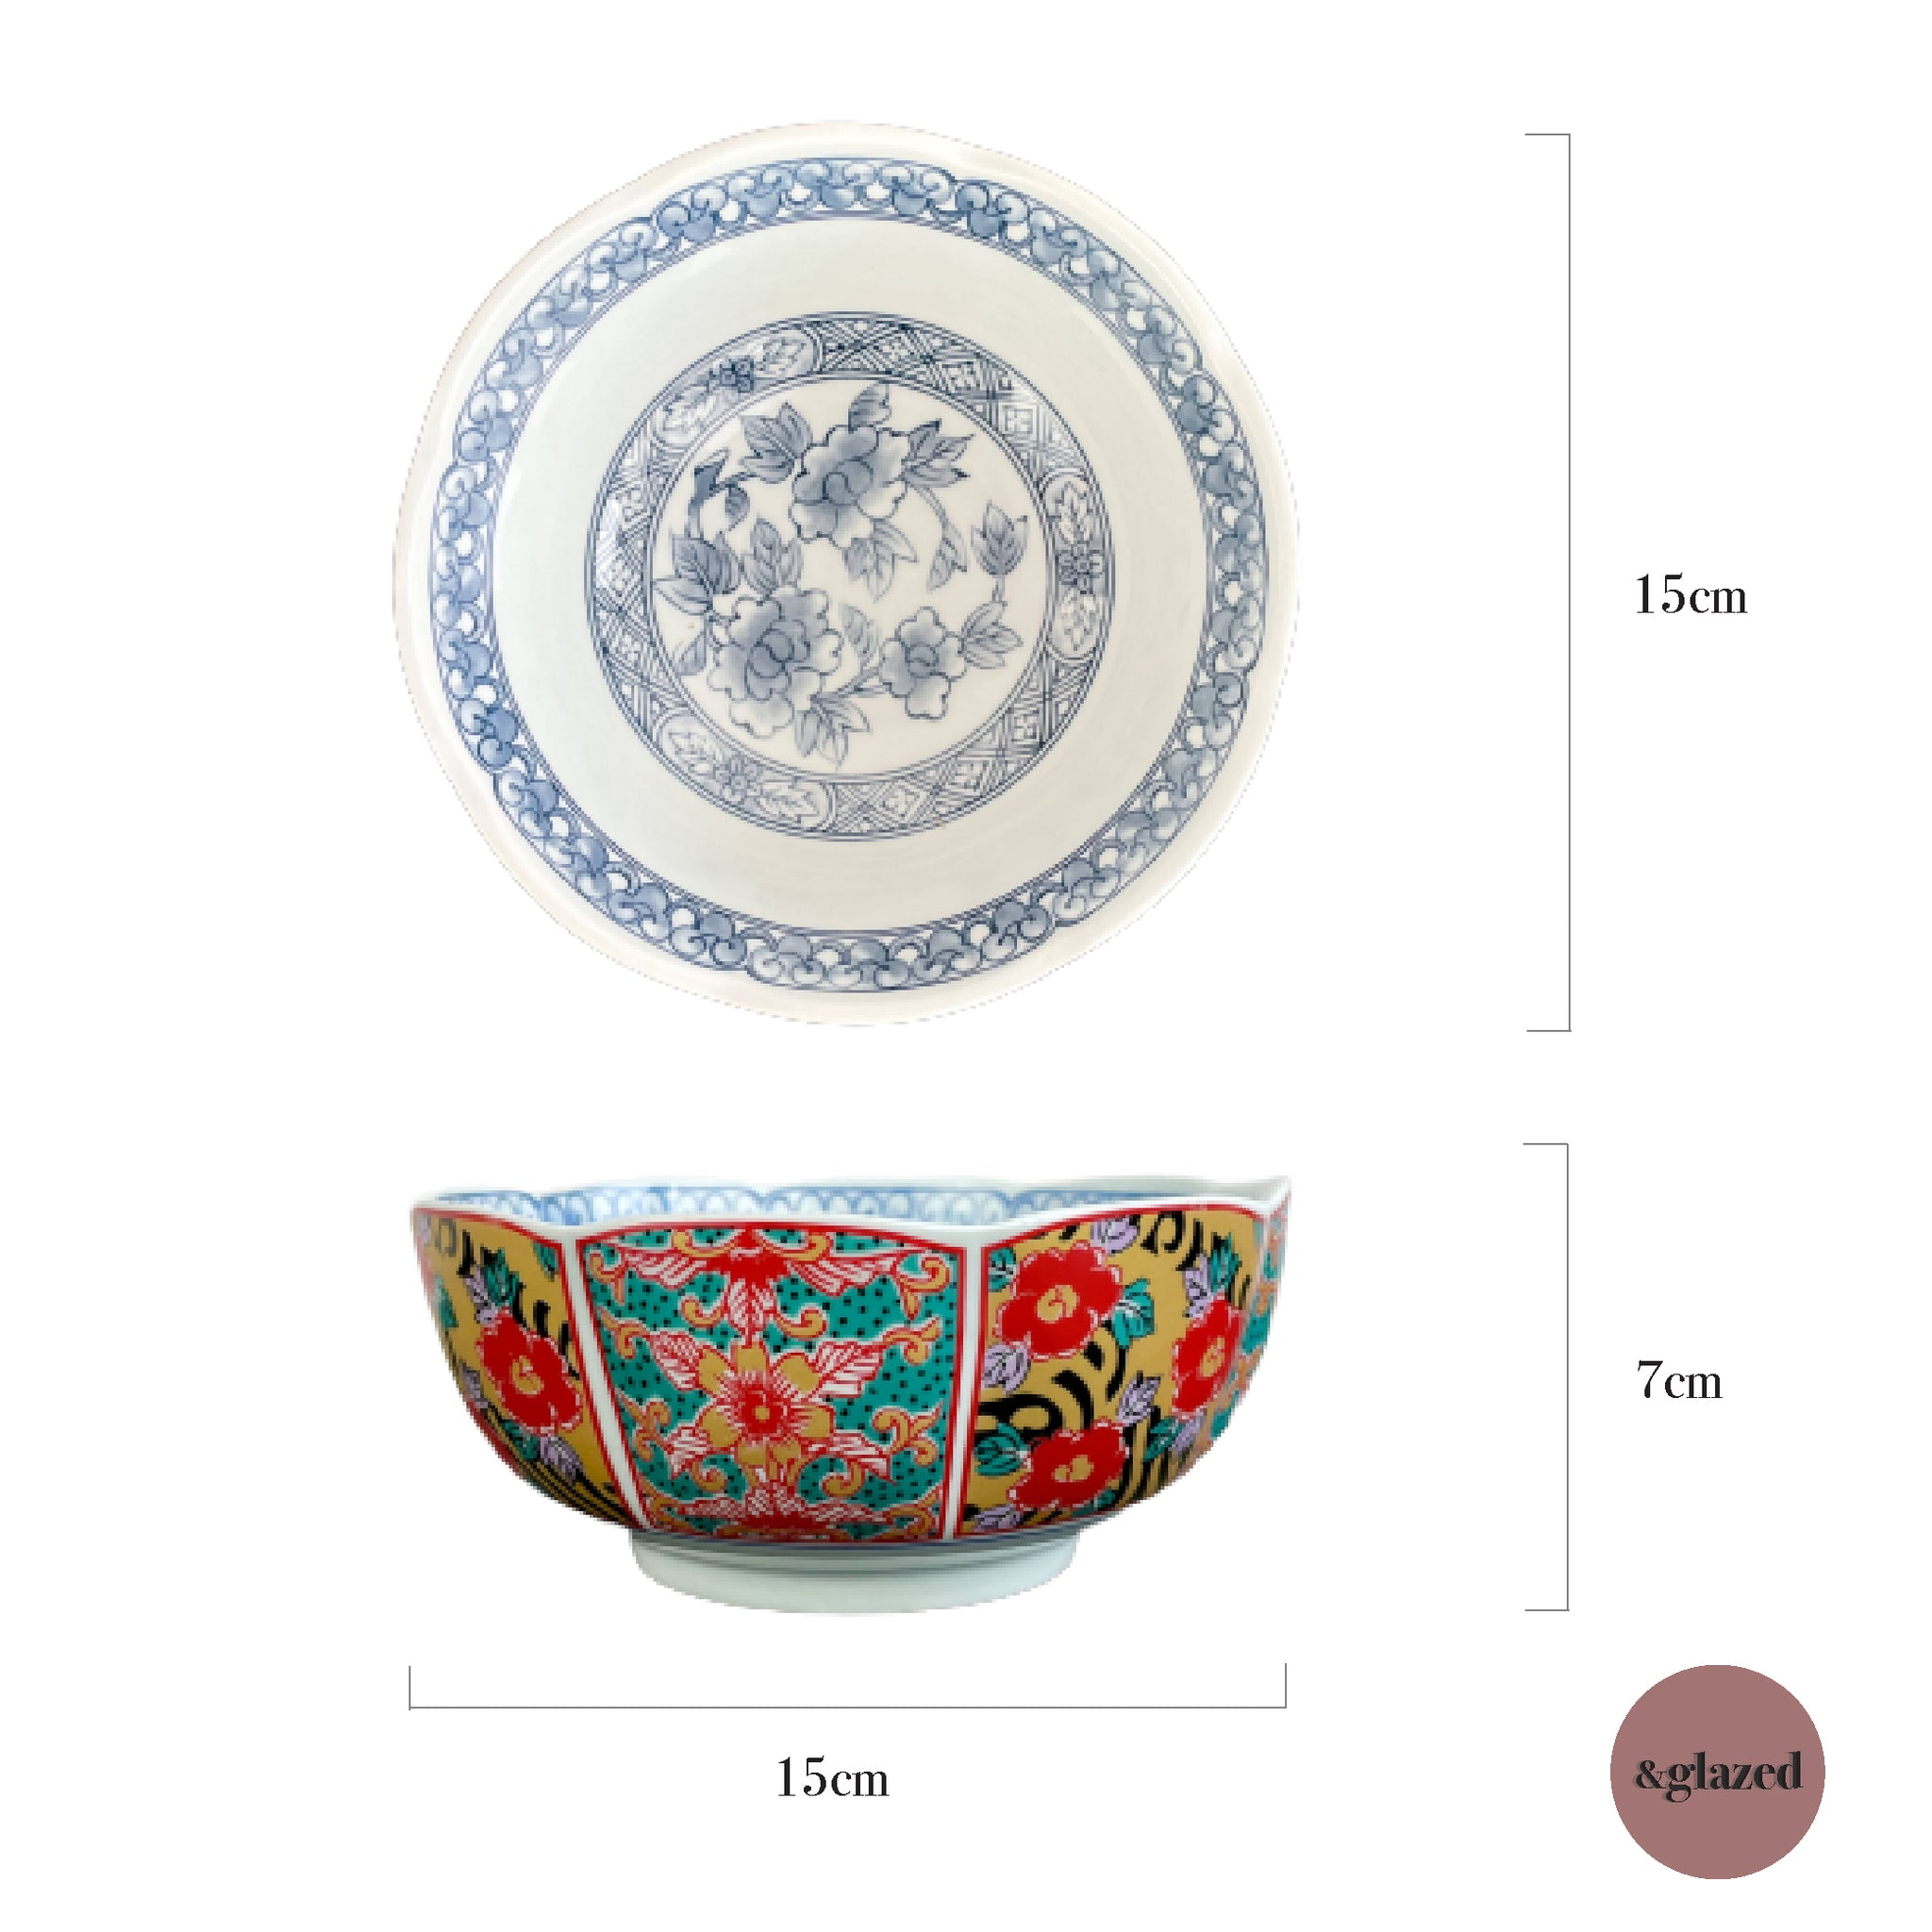 Orients 6-inch Small Bowl - Jin